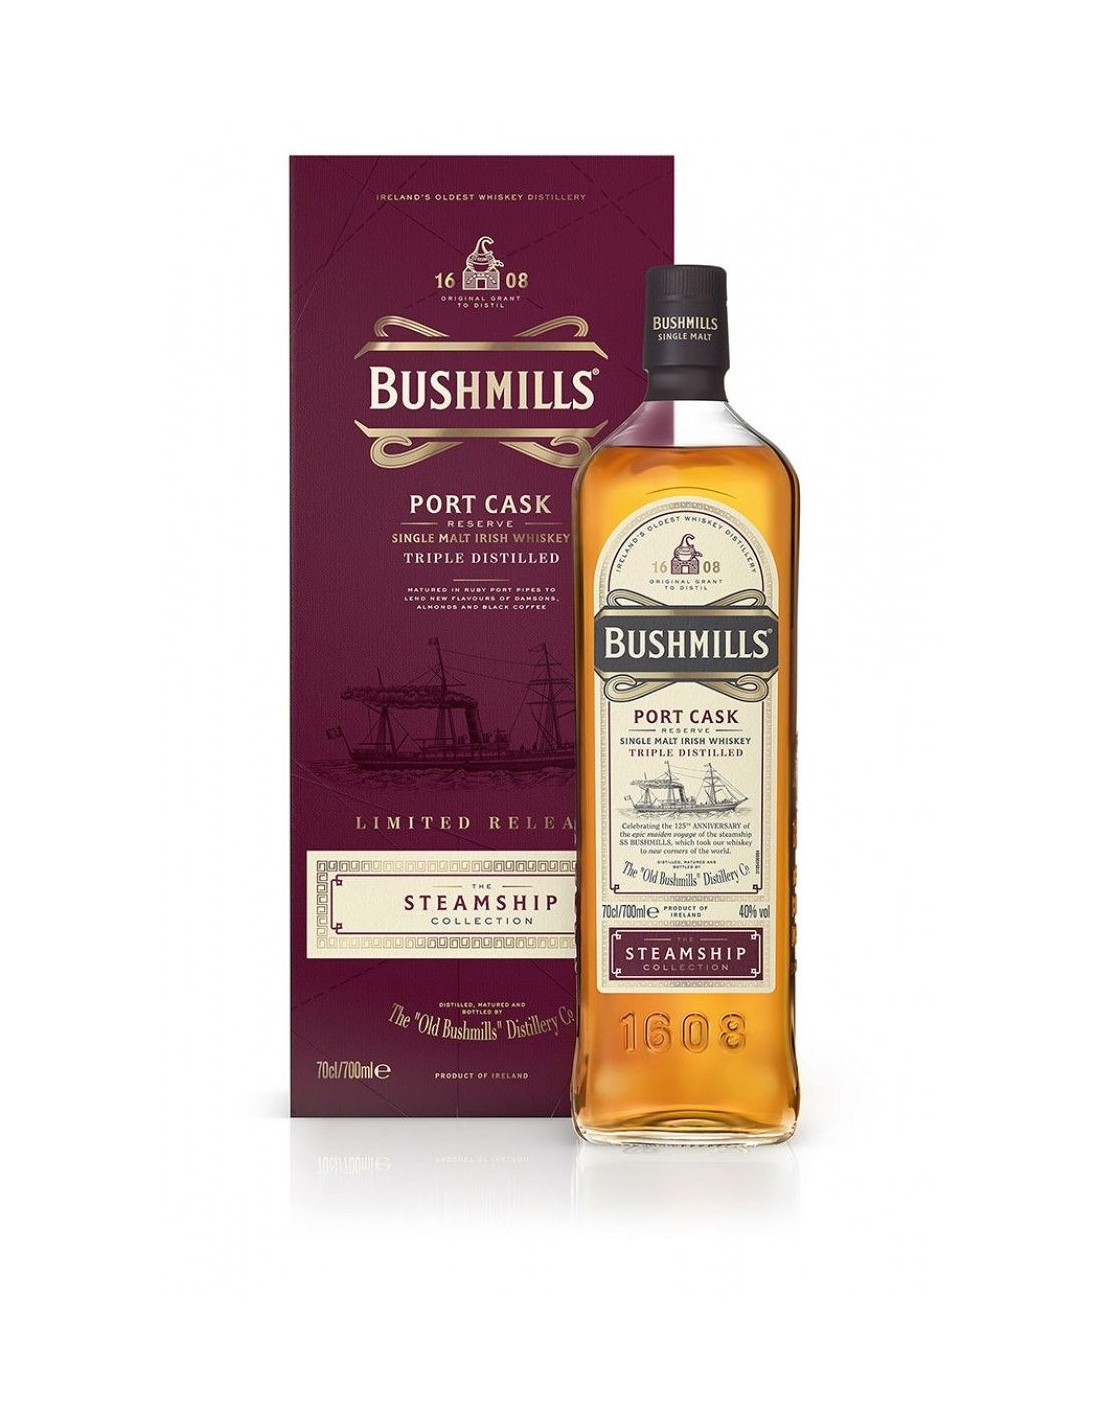 Whisky Bourbon Bushmills The Steamship Port Cask, 40% alc., 0.7L, Irlanda